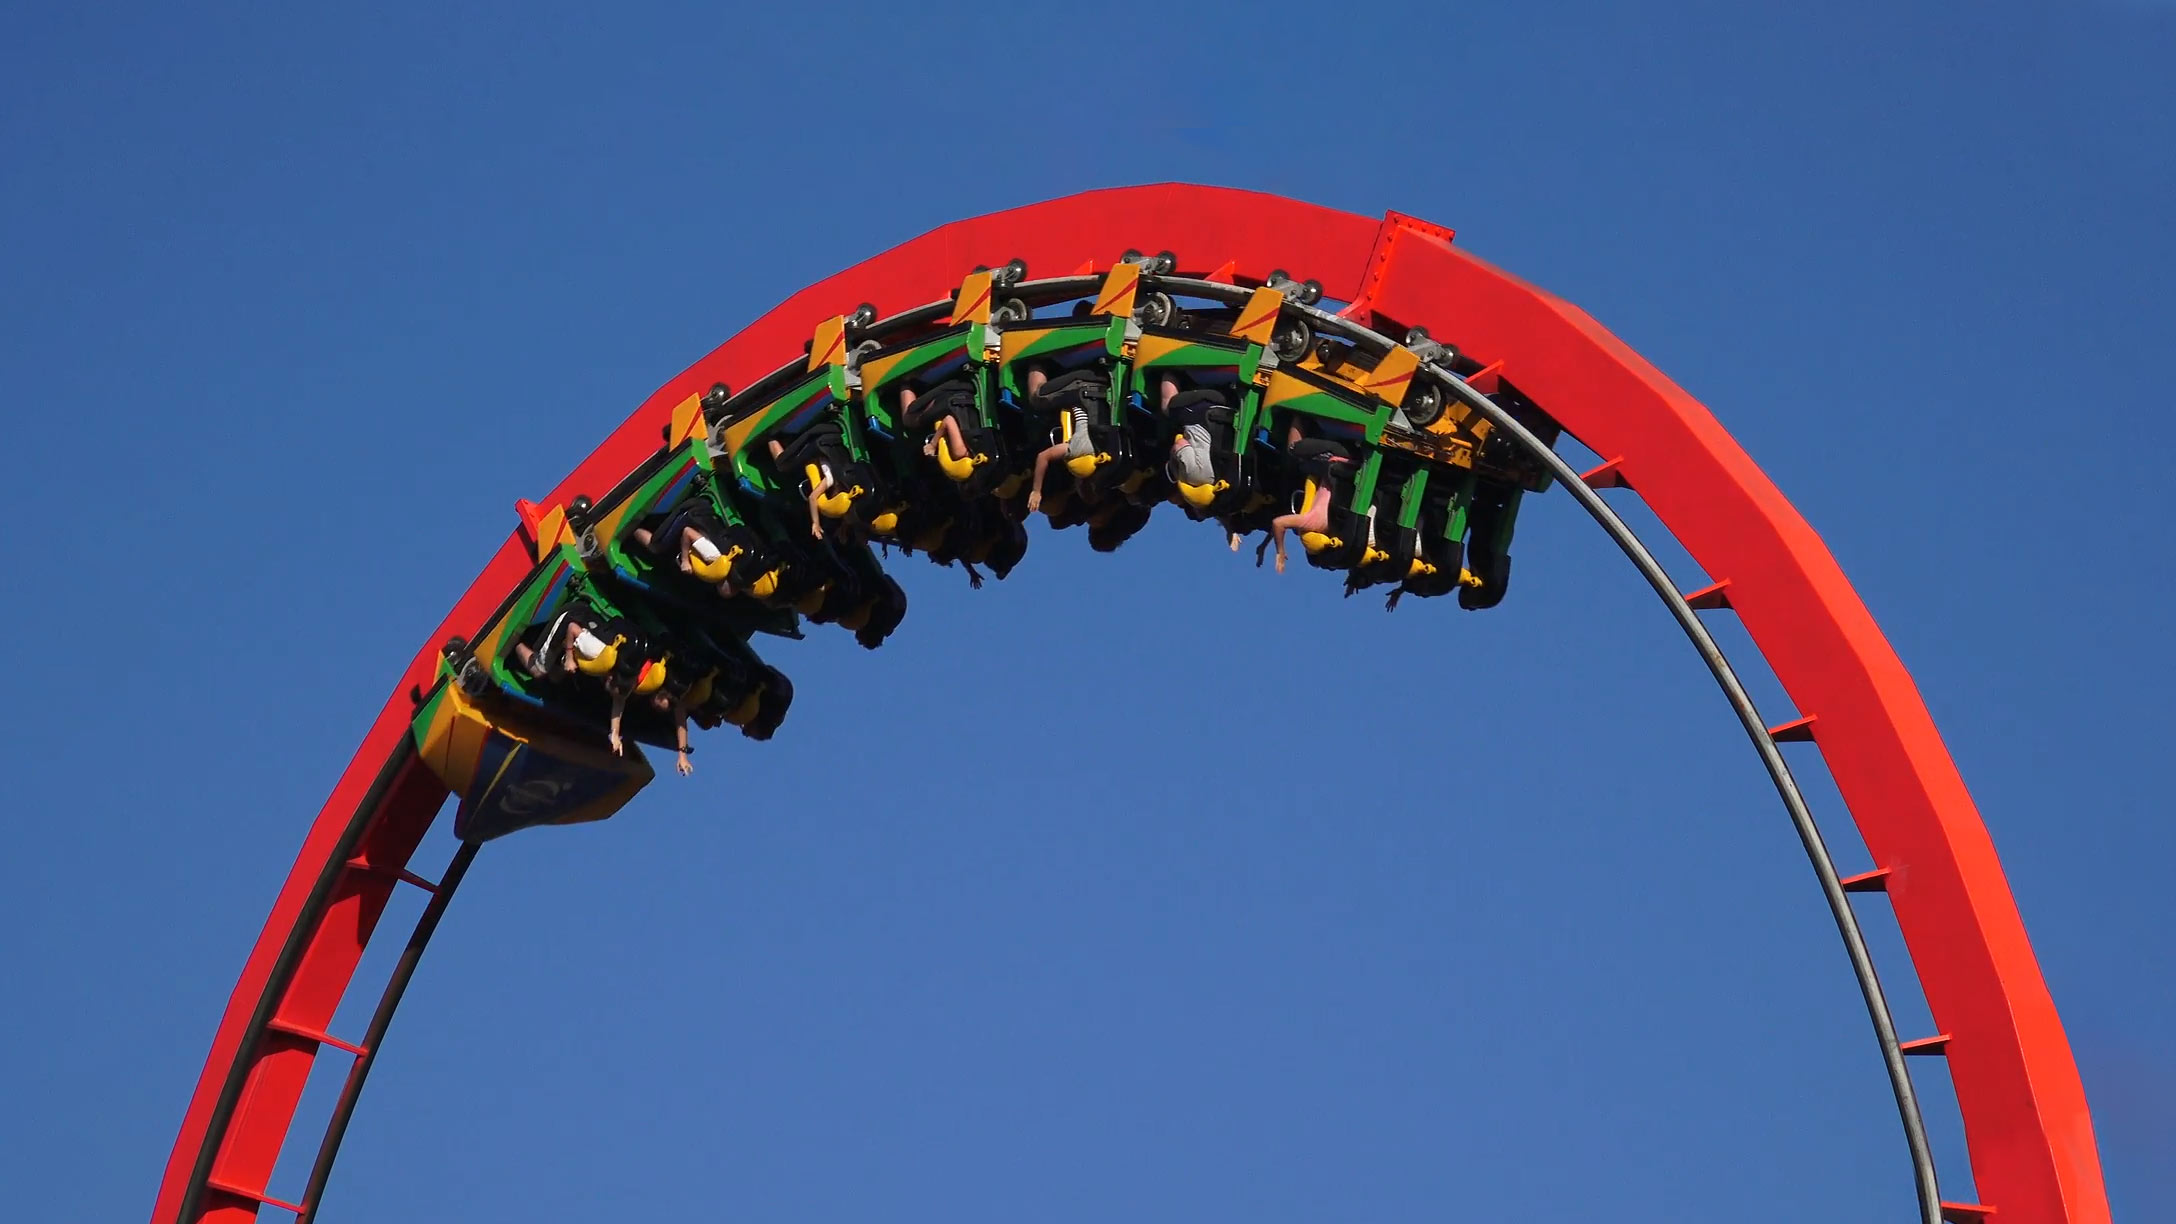 A a red roller coaster with the cart going upside down using g-force.